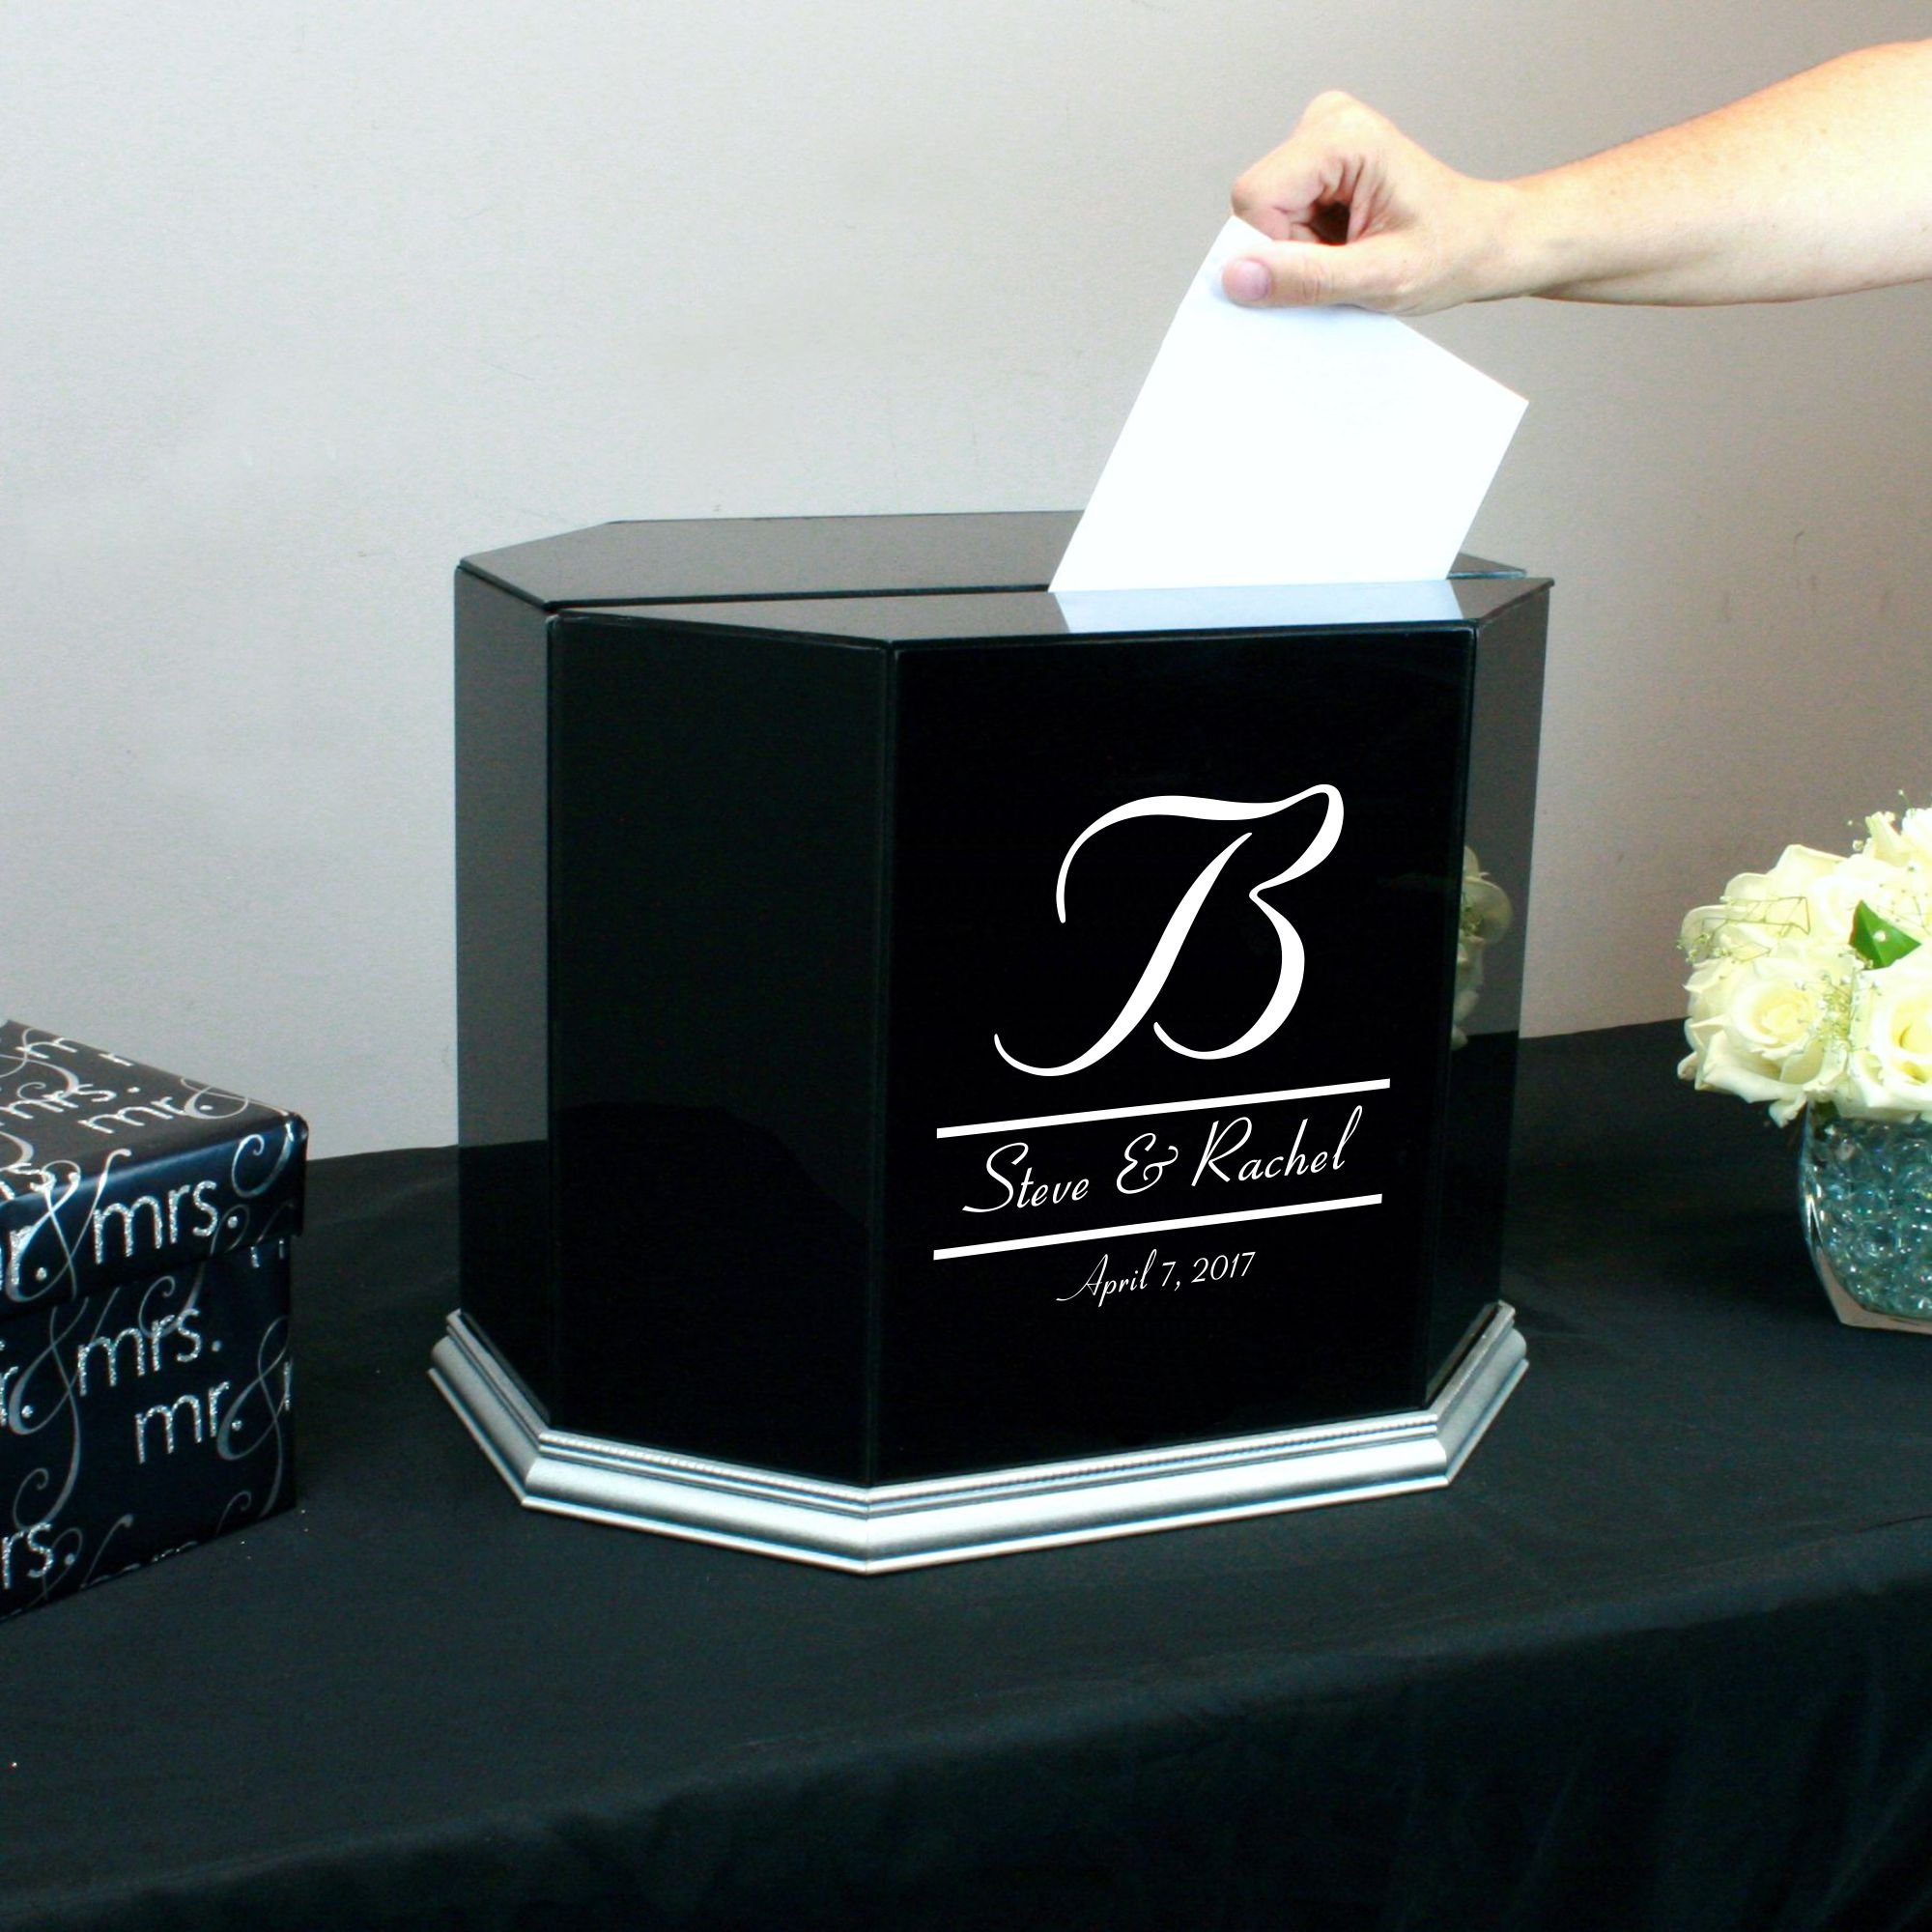 Personalized Wedding Card Box Black Glass with Silver Trim by Perfect Cases